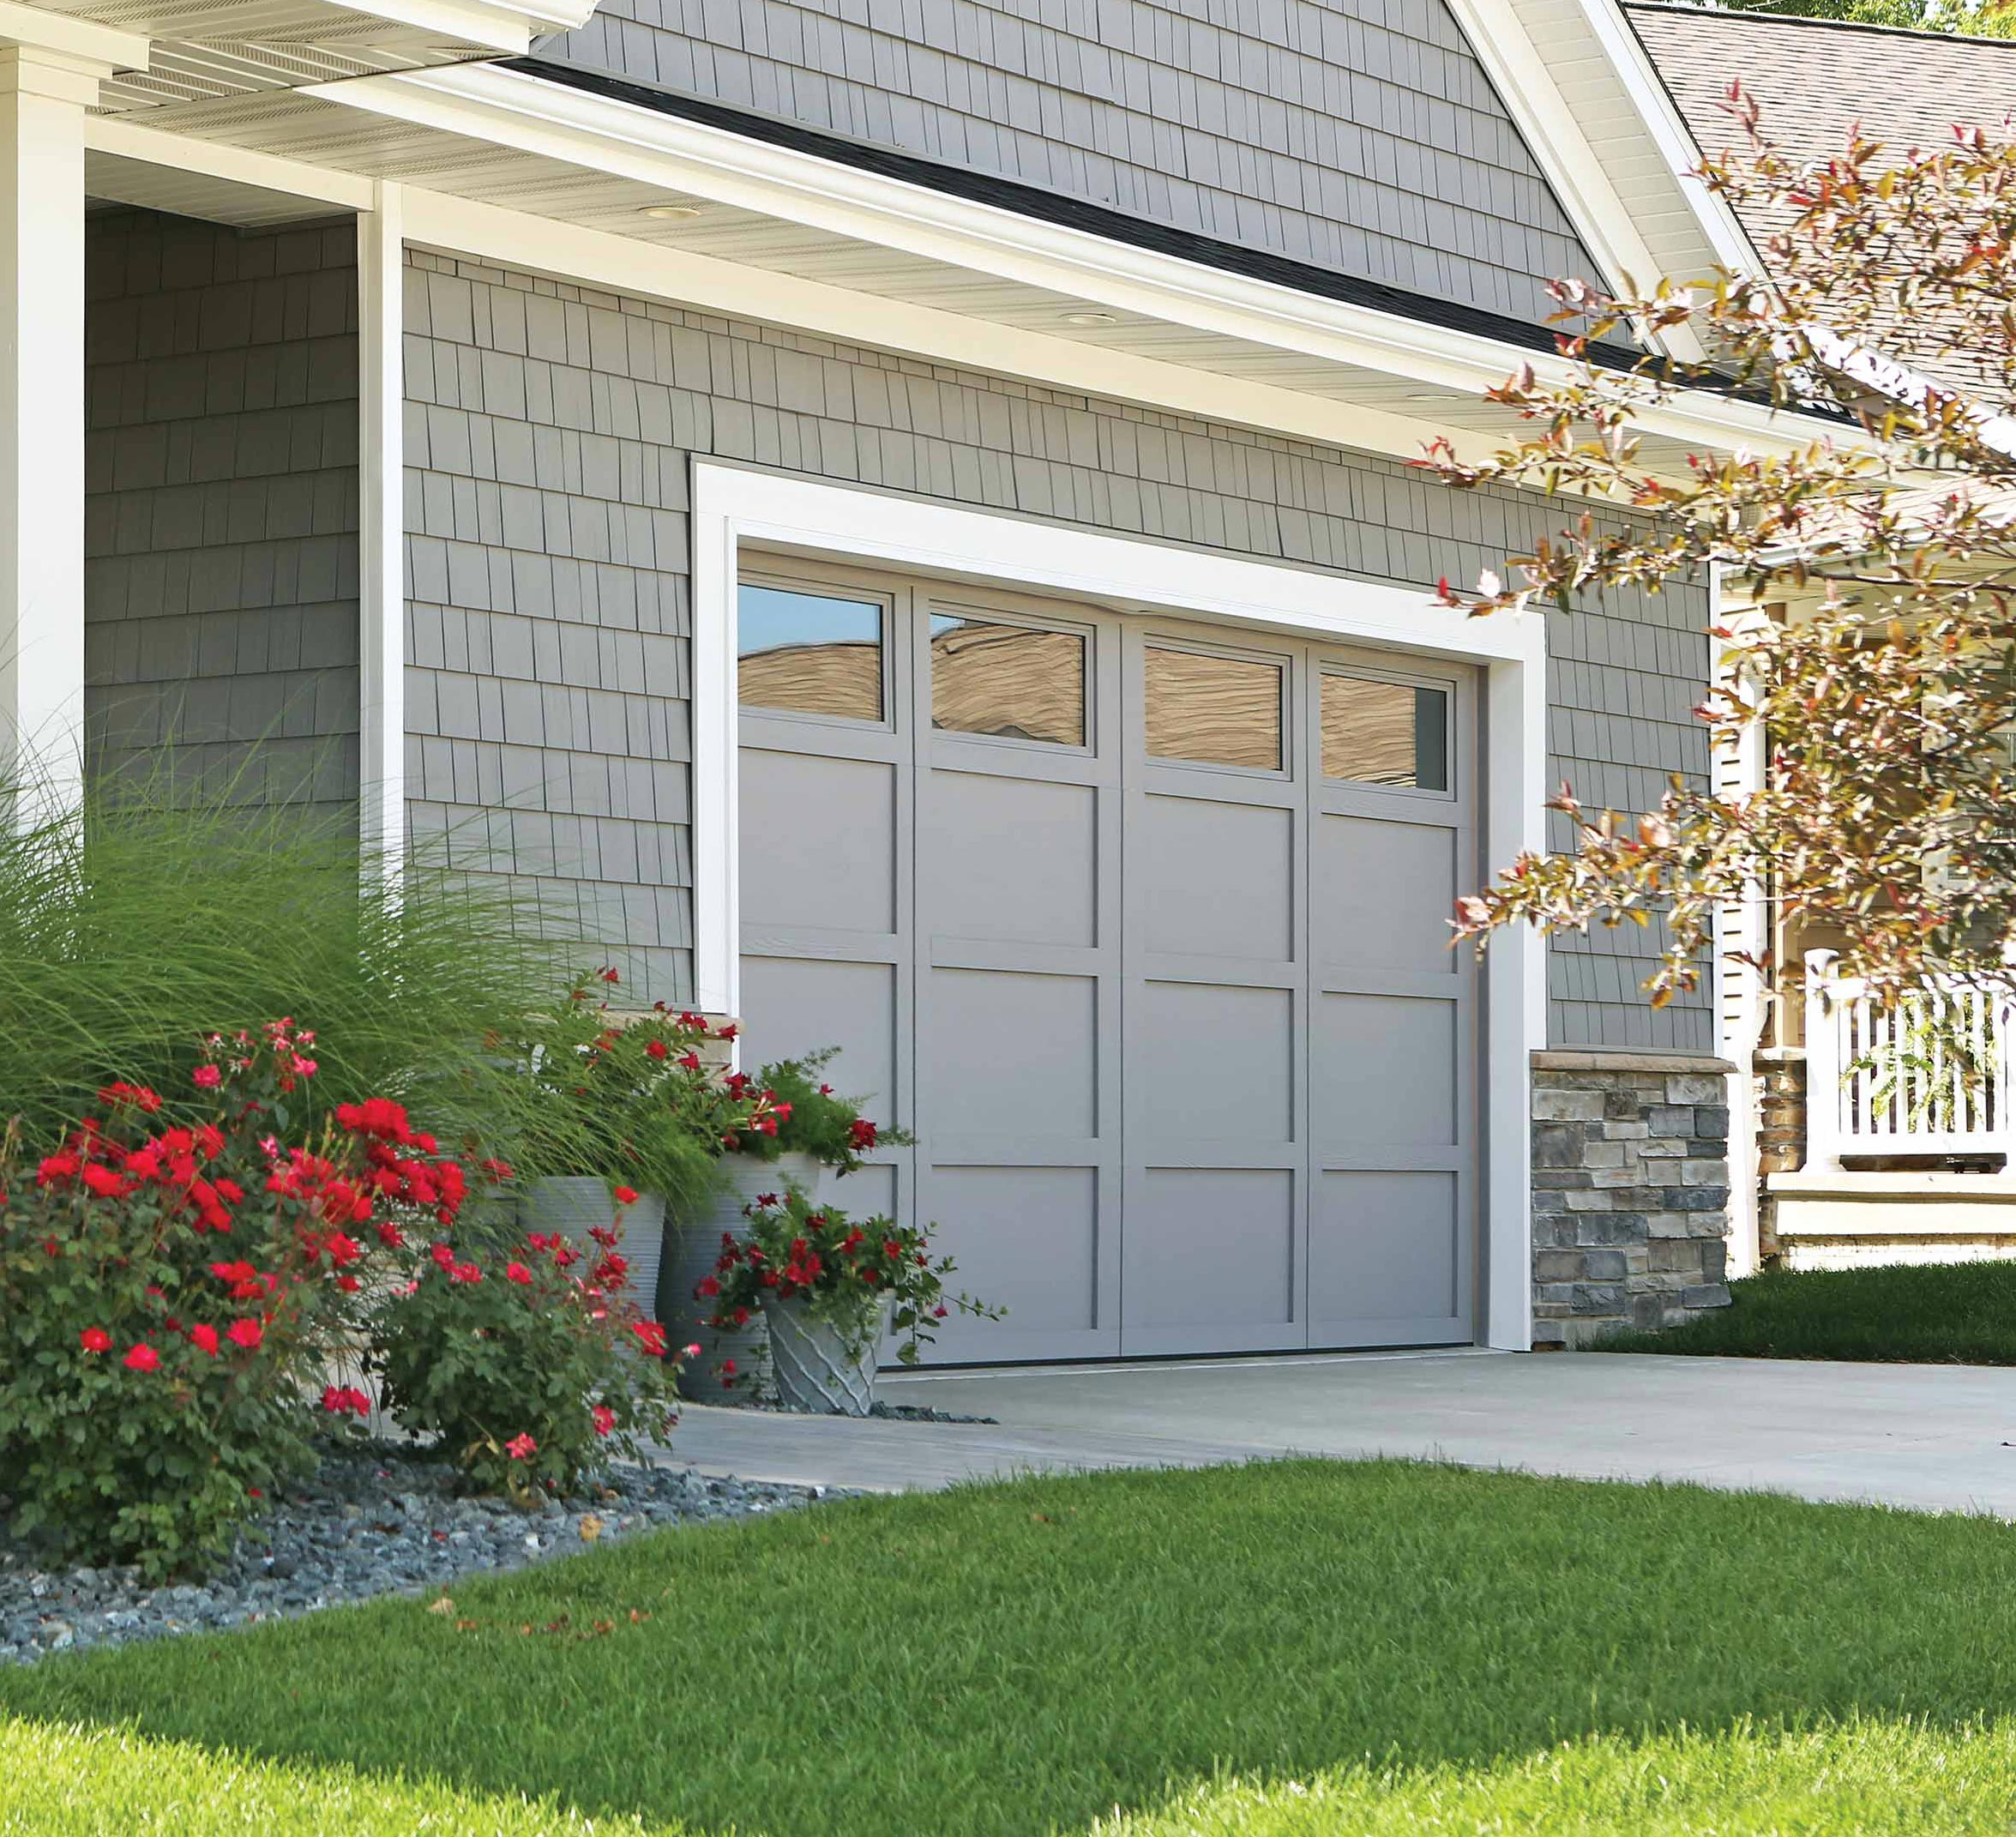 Carriage House Horizontal Vertical Overlays Model 7540-302 Gray Plain Square